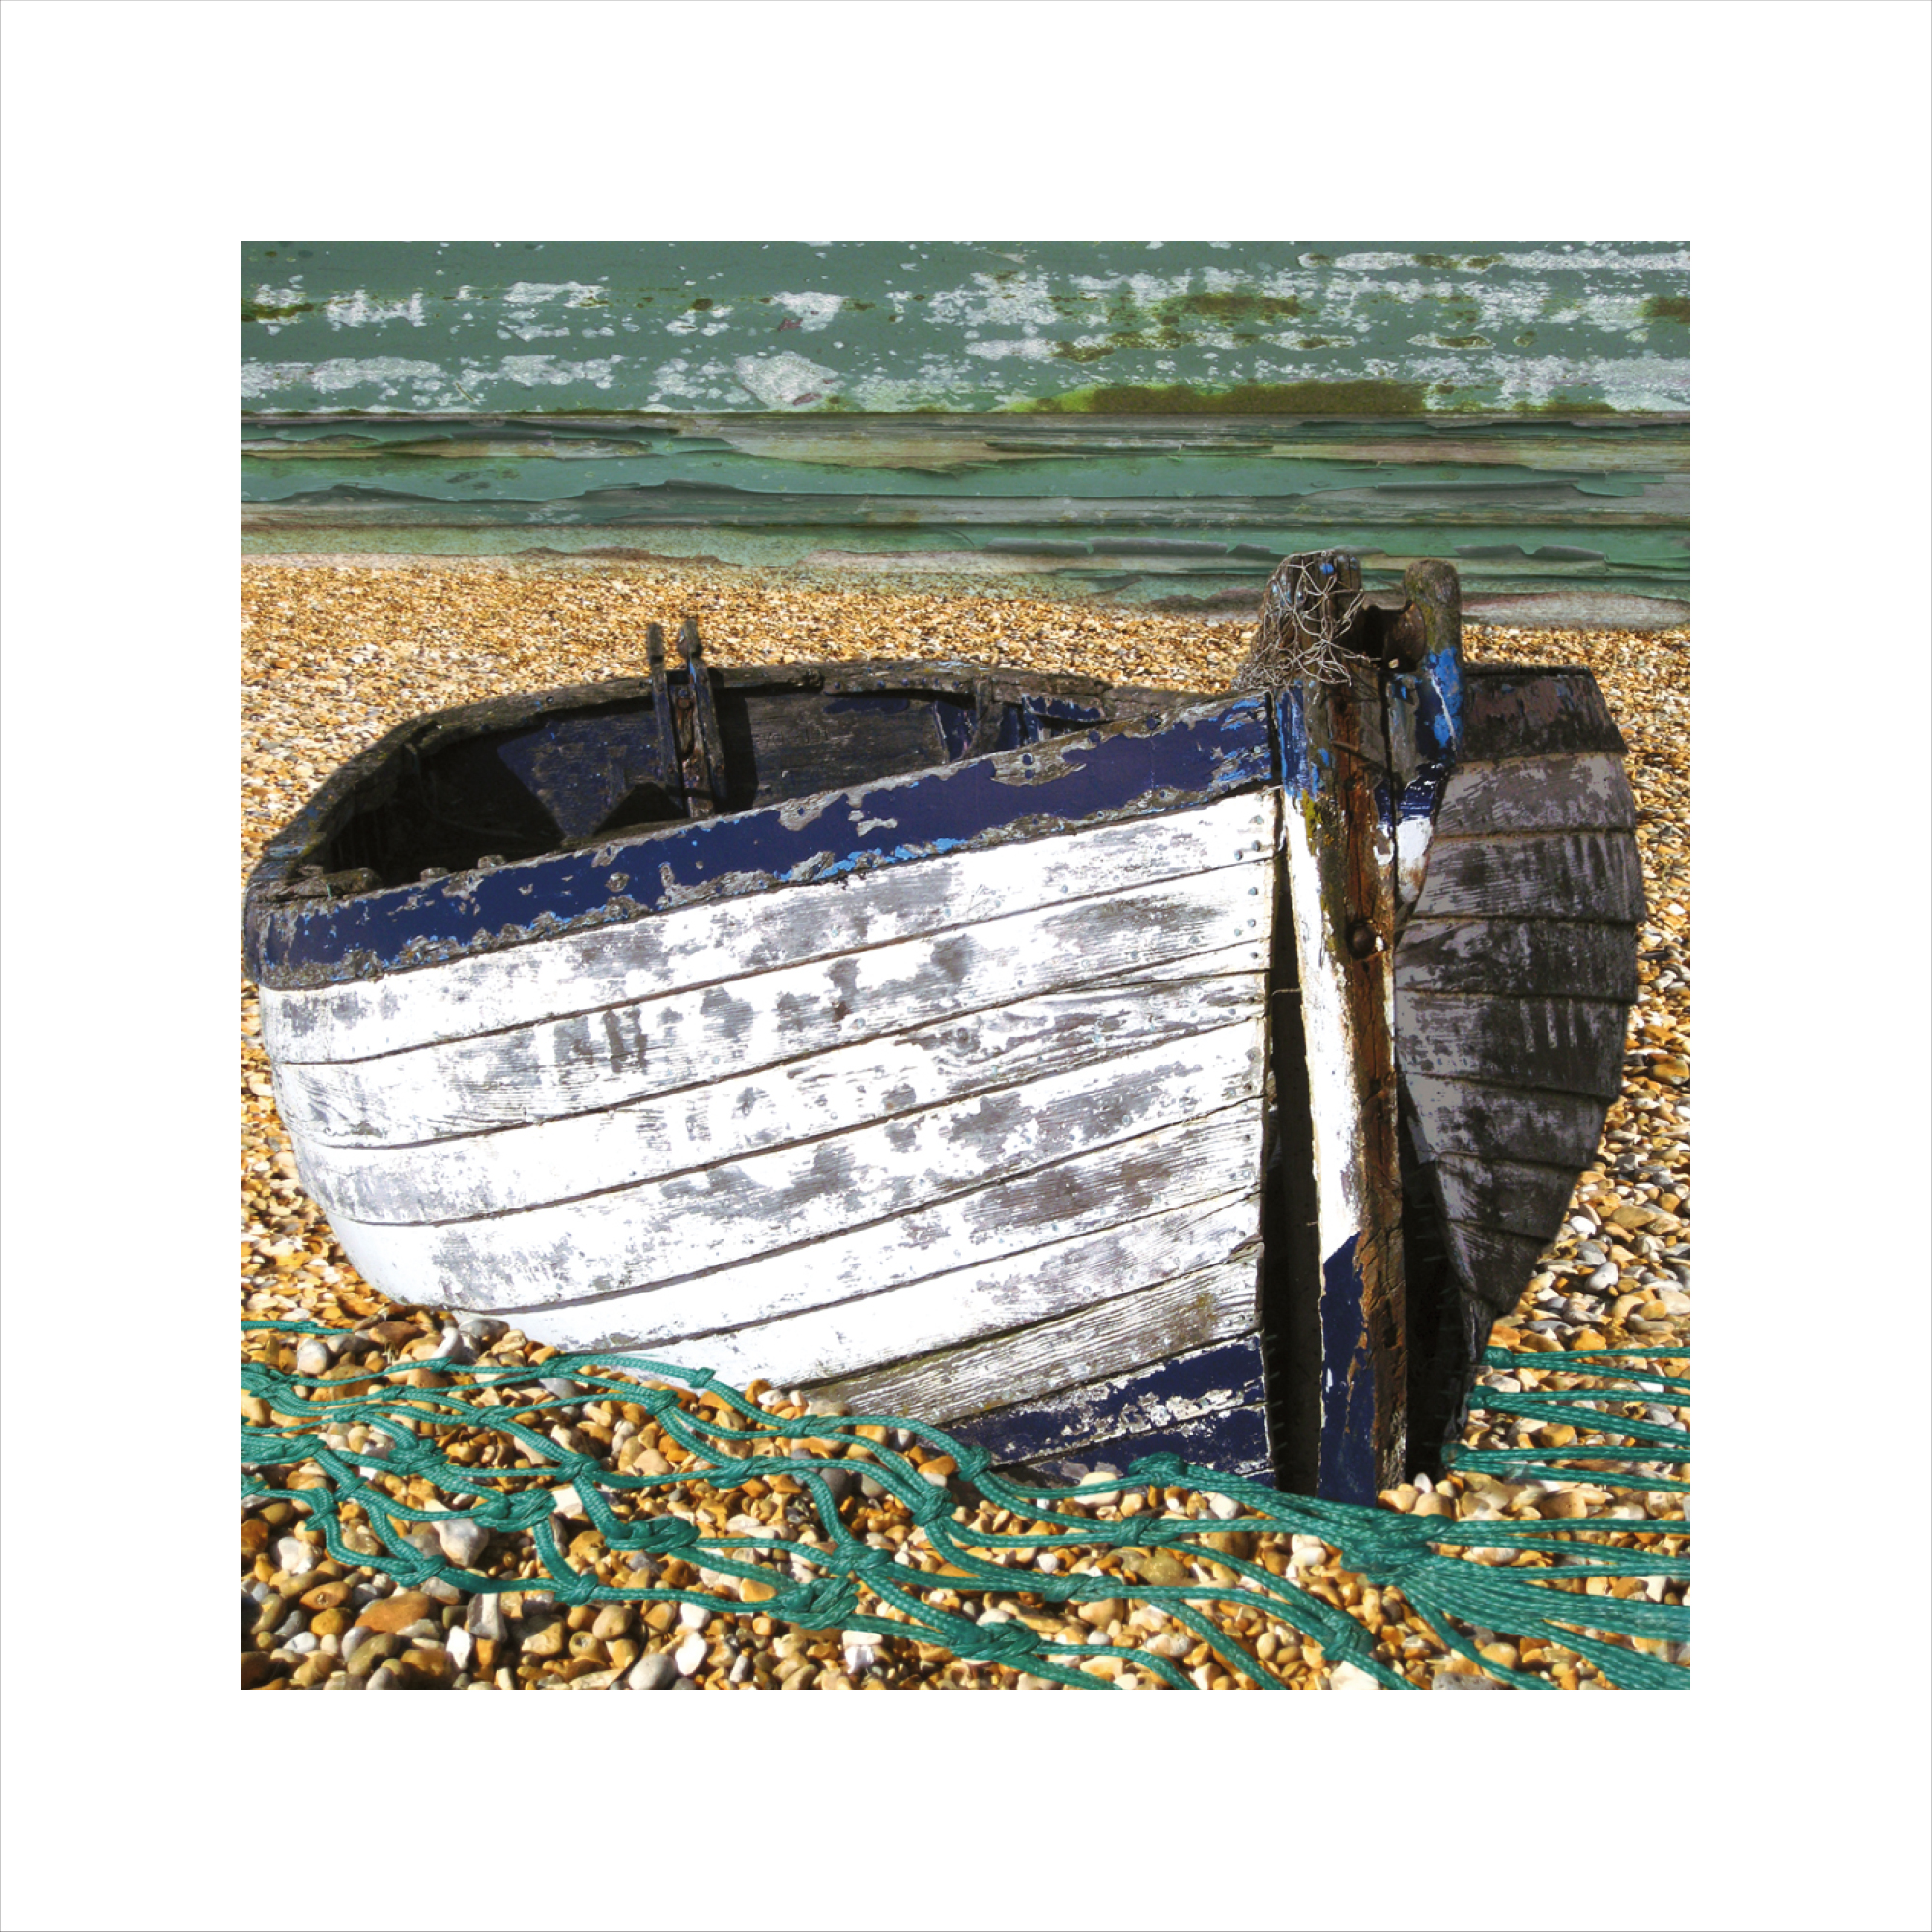 Claire Gill, Limited edition prints, digital photomontage, fine art prints, hahnemuhle, coastal art, Collect Art, seascape 10, Aldeburgh